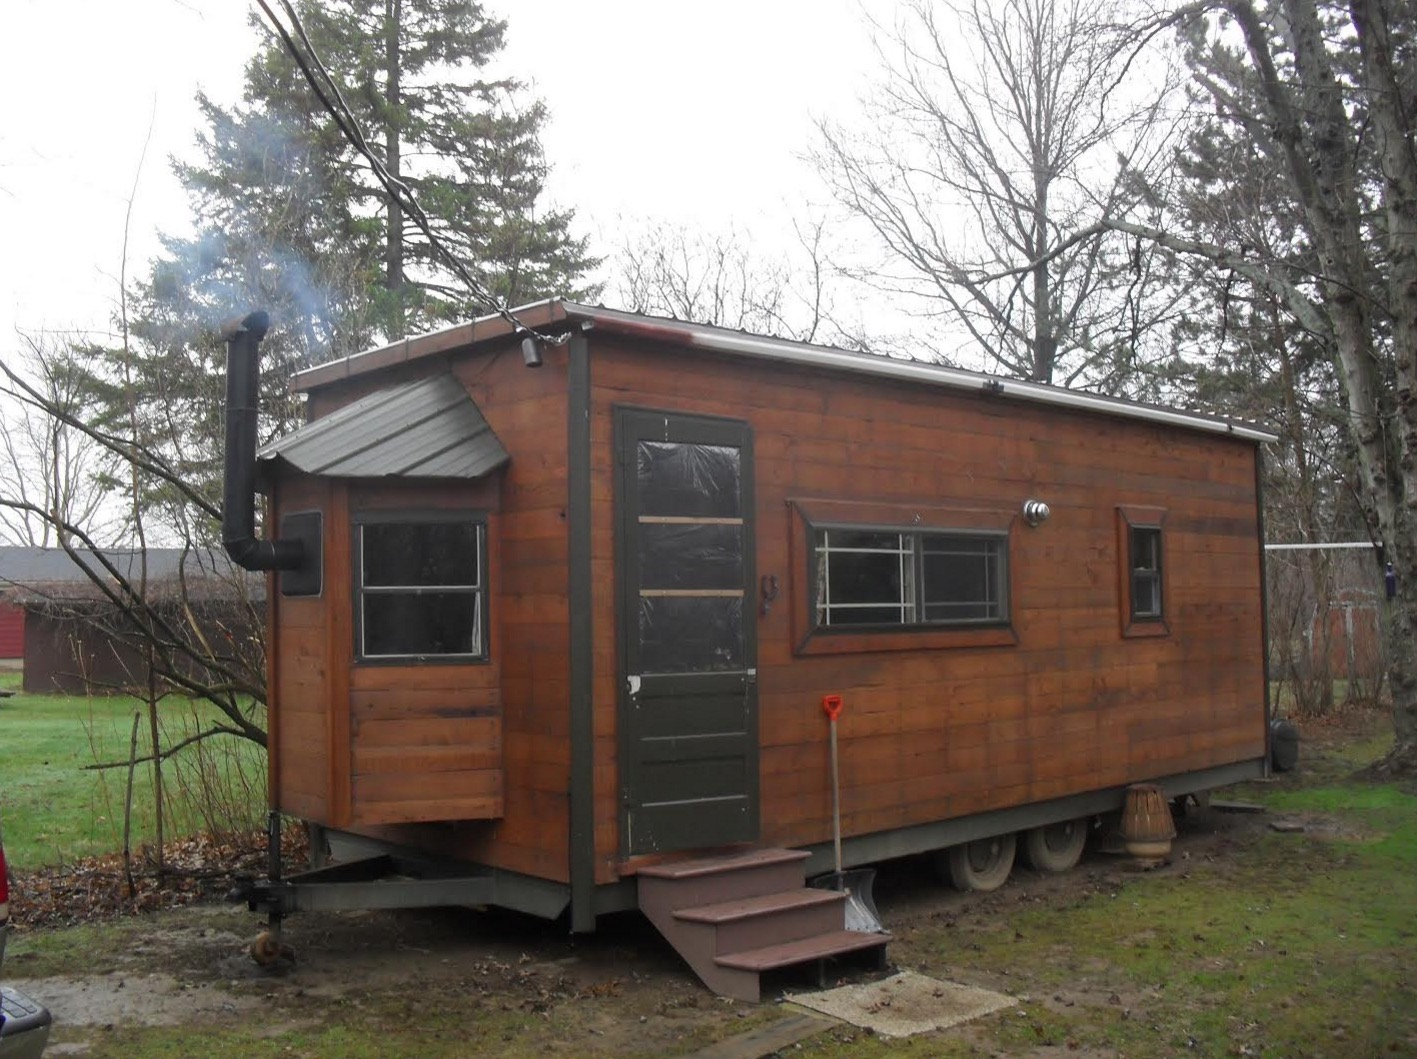 Kerrys 12k Tiny House On Wheels For Sale